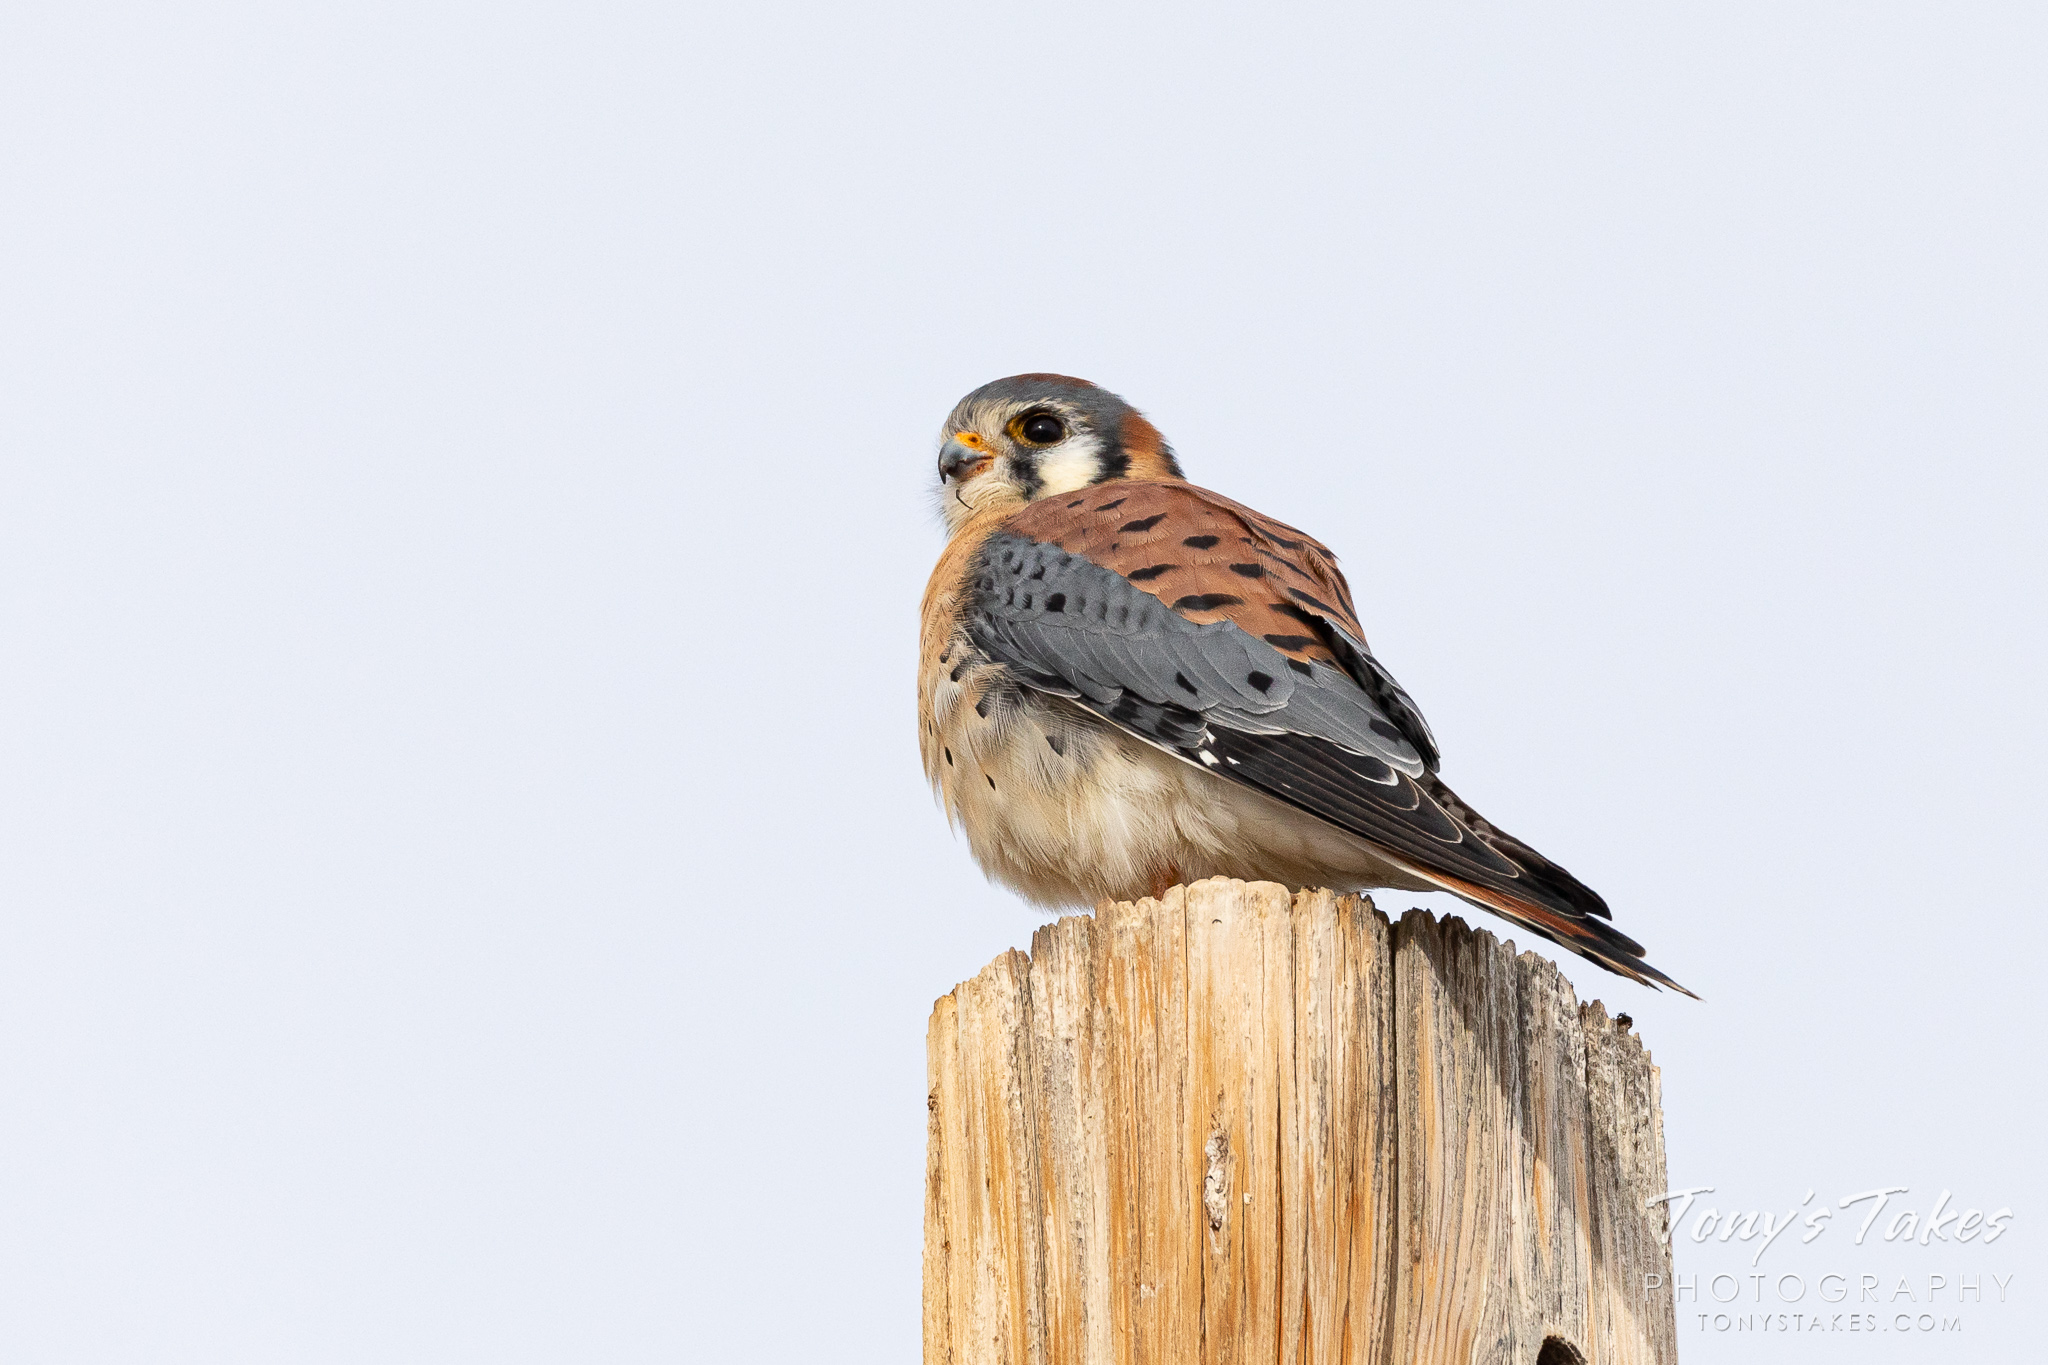 American kestrel keeping watch on the plains